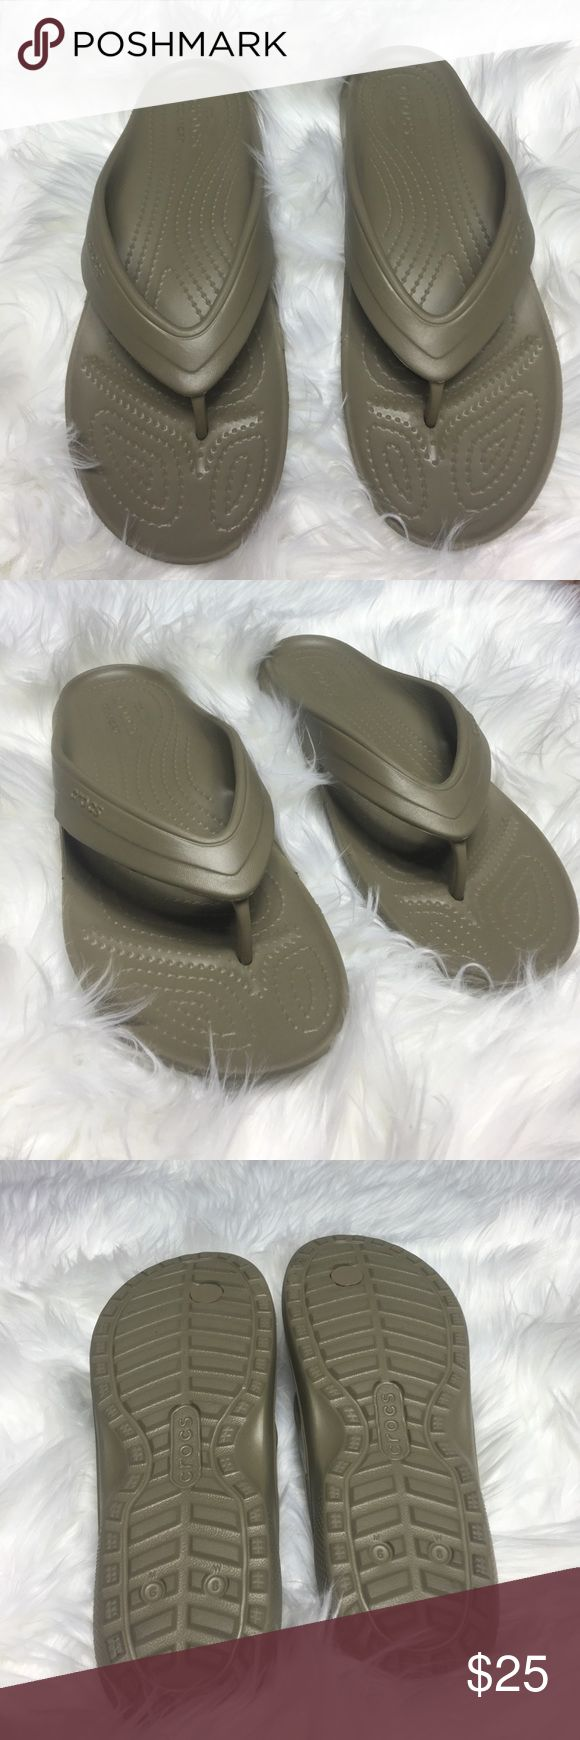 Women CROCS sandals!! Super comfy CROCS sandals! Like new no scratches or stains. Very lightweight and they look great on! Perfect for Spring!! CROCS Shoes Sandals